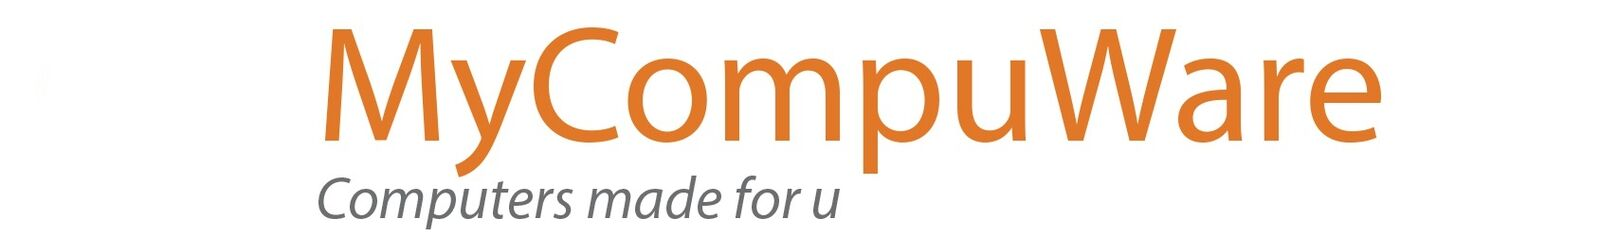 Mycompuware